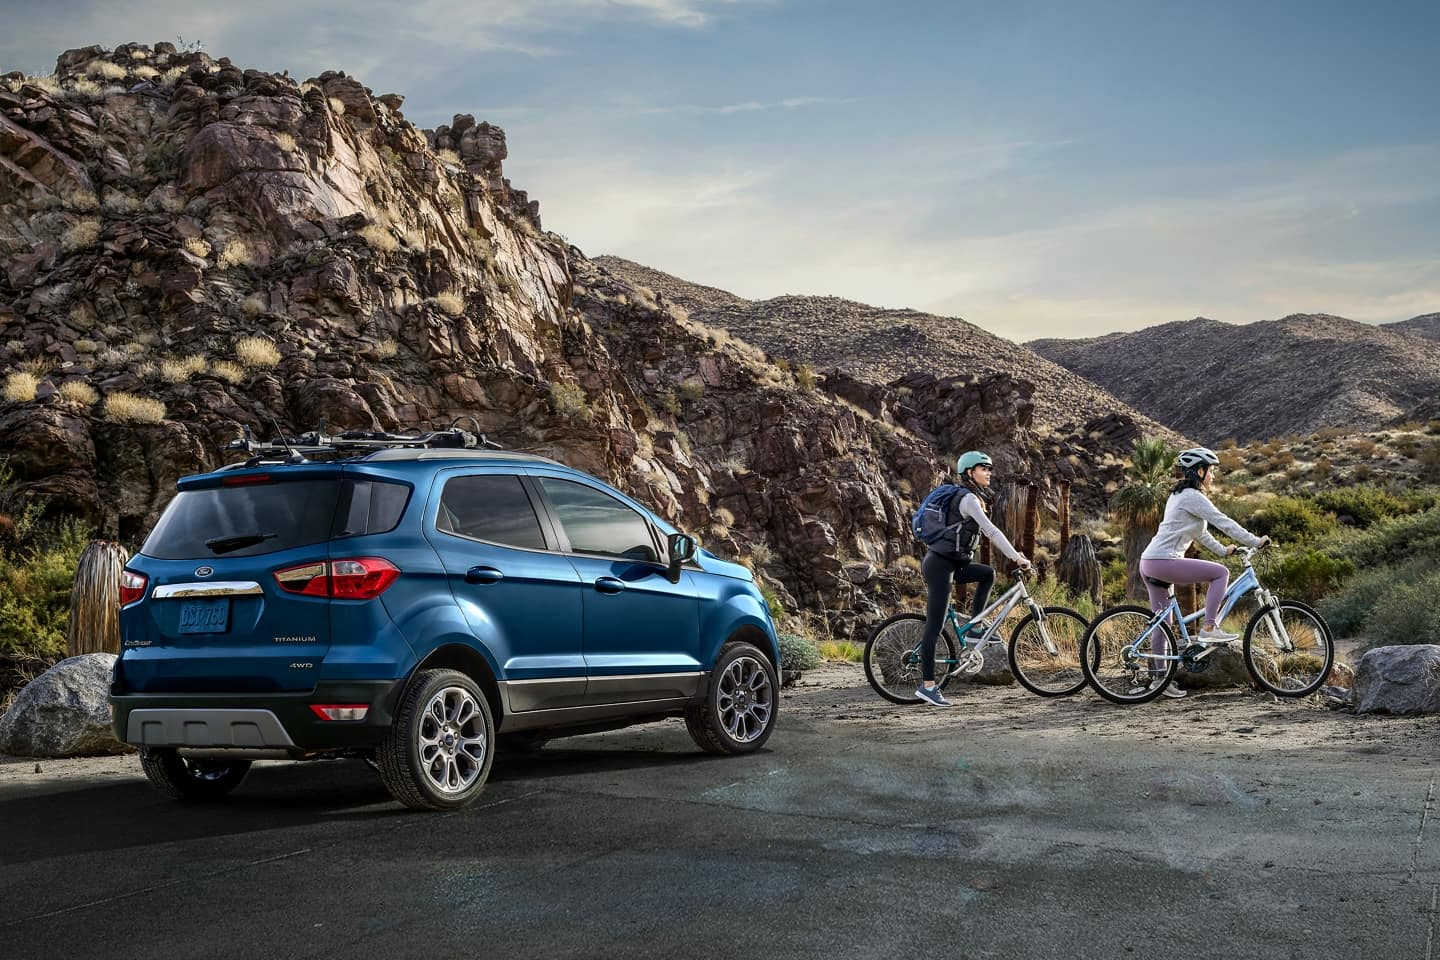 2020 Ford EcoSport ready for adventure